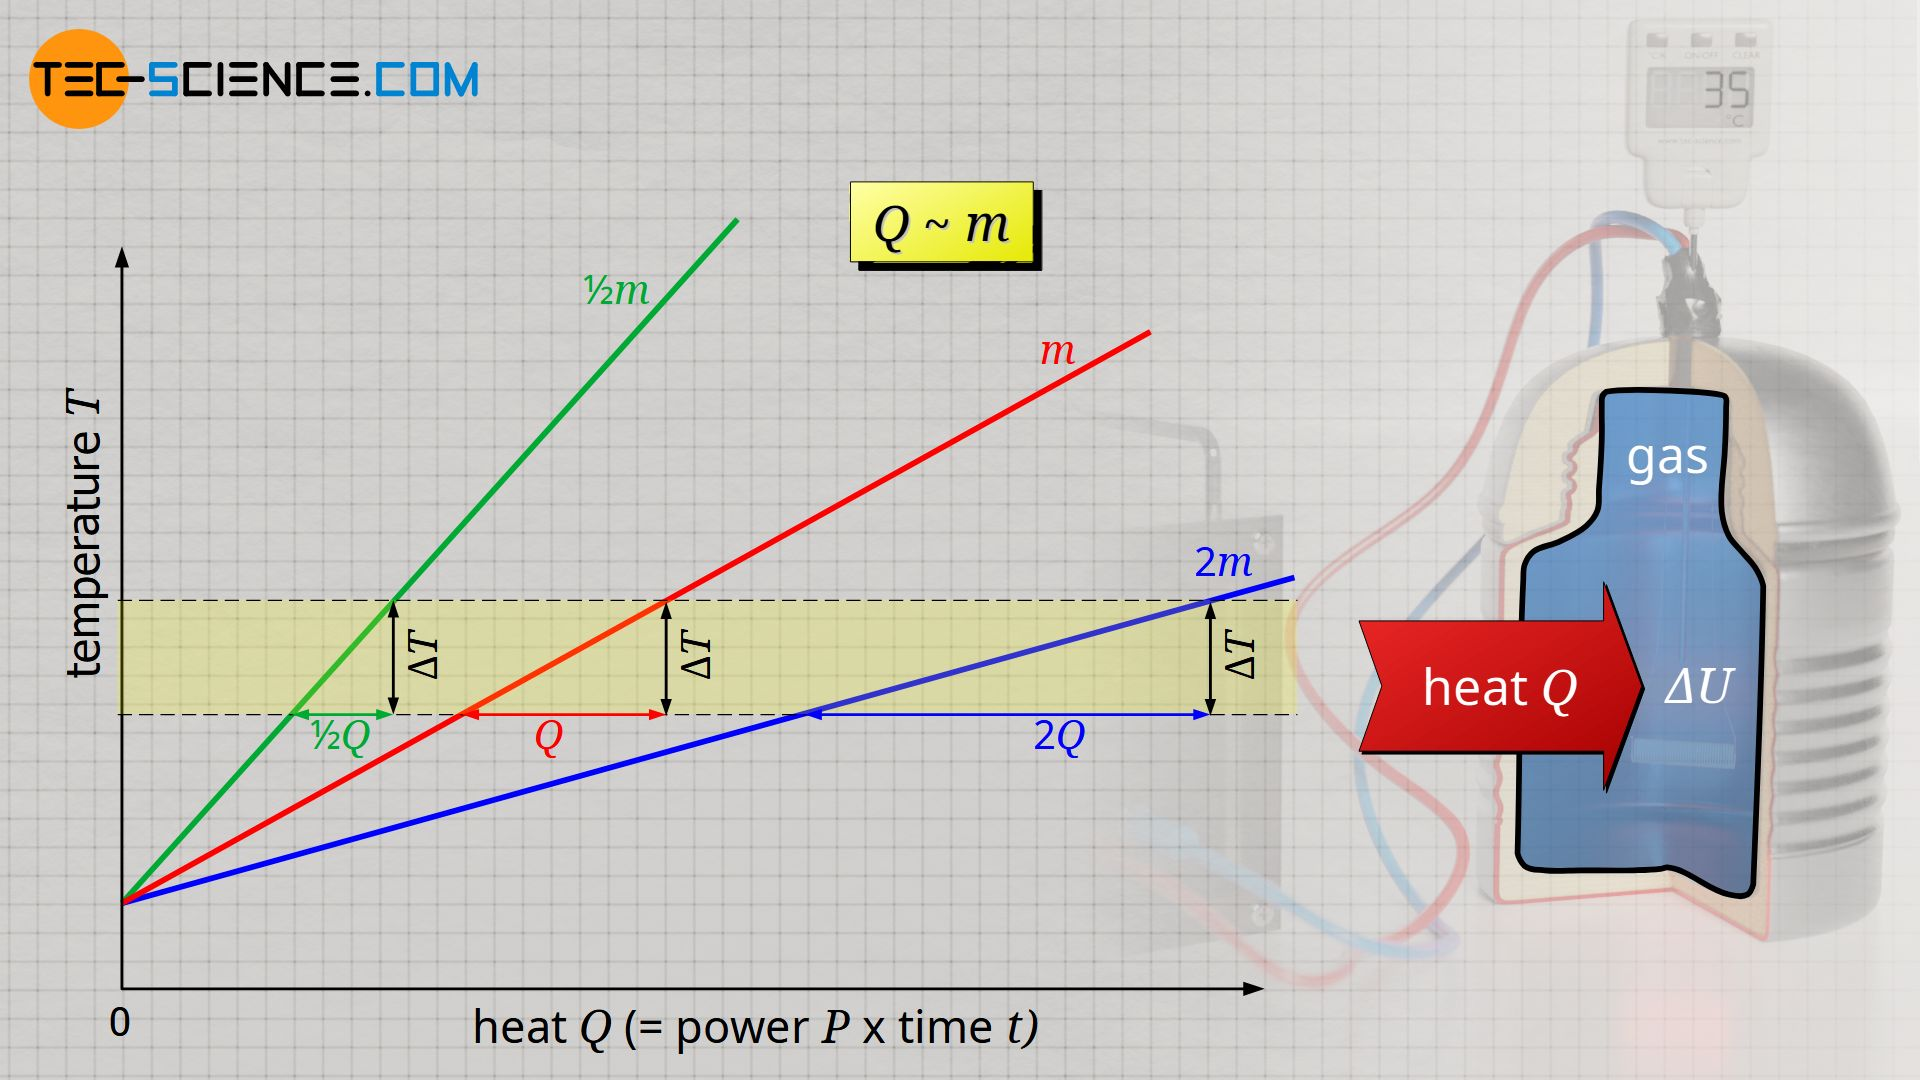 Proportionality between heat and mass at constant temperature change